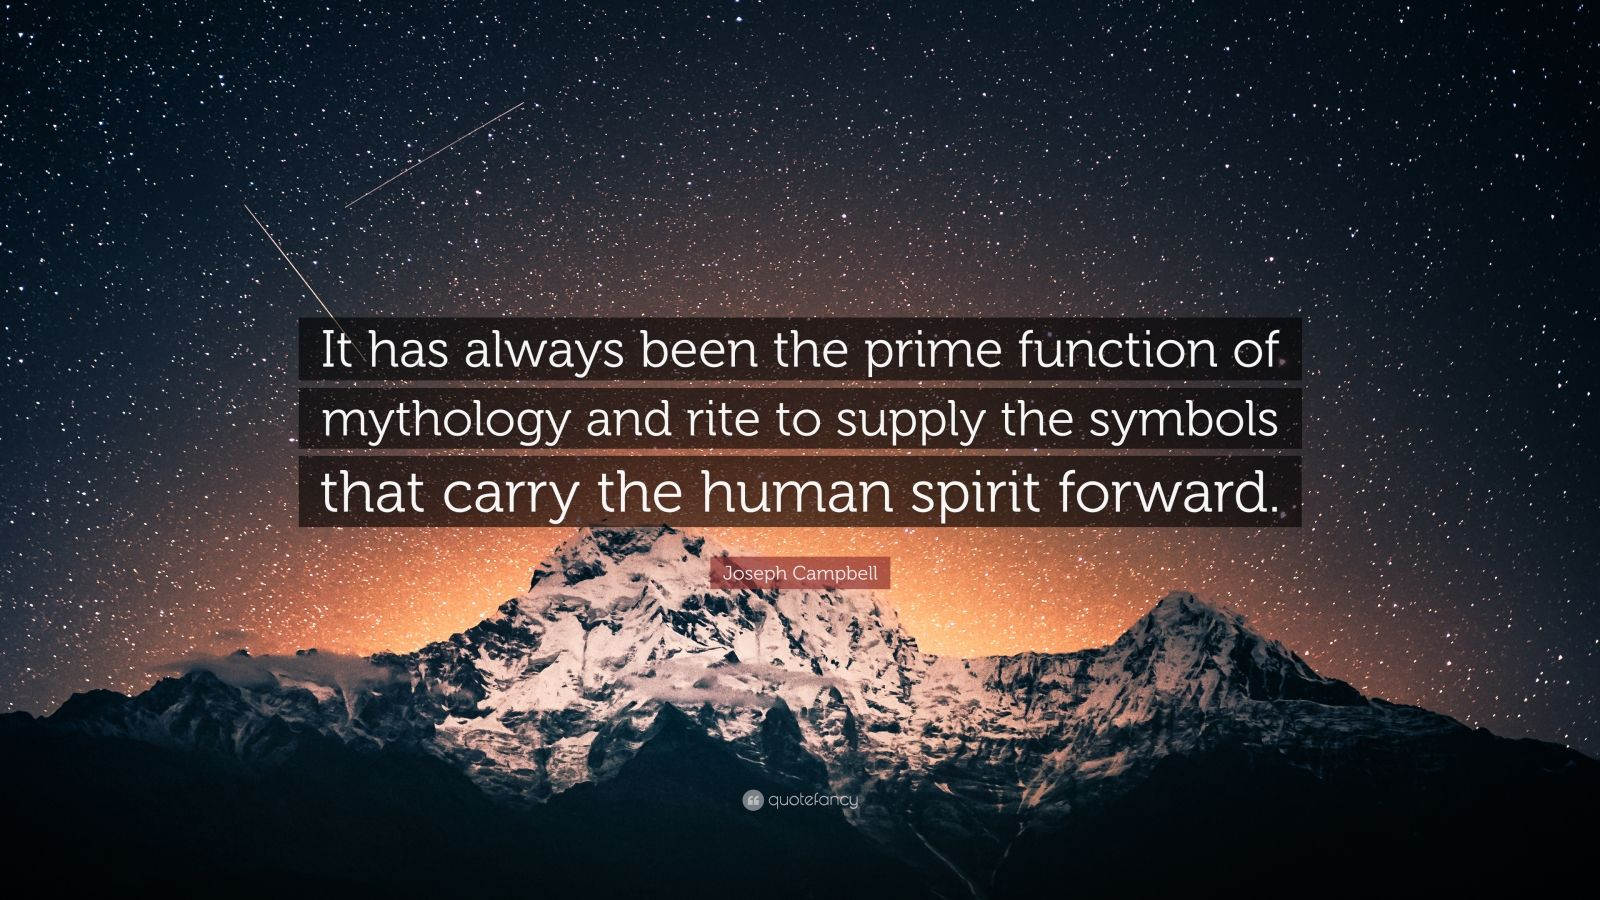 """Joseph Campbell Quote: """"It has always been the prime function of mythology and rite to supply the symbols that carry the human spirit forward."""""""